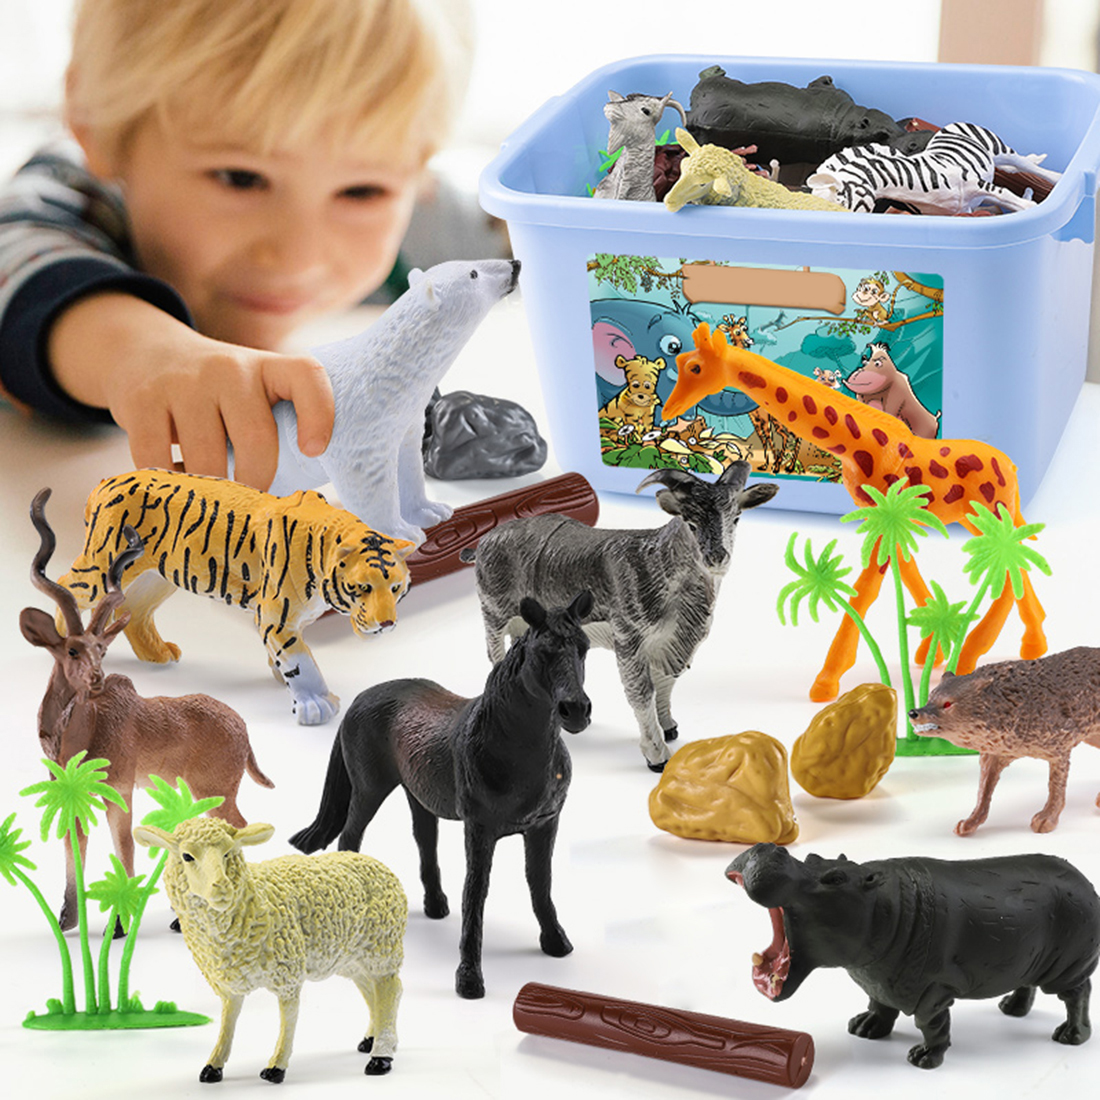 44Pcs Wild Animals Toy Simulation Animals Model Children Early Learning Cognitive Toy Playing Learning Set for Age More Than 344Pcs Wild Animals Toy Simulation Animals Model Children Early Learning Cognitive Toy Playing Learning Set for Age More Than 3